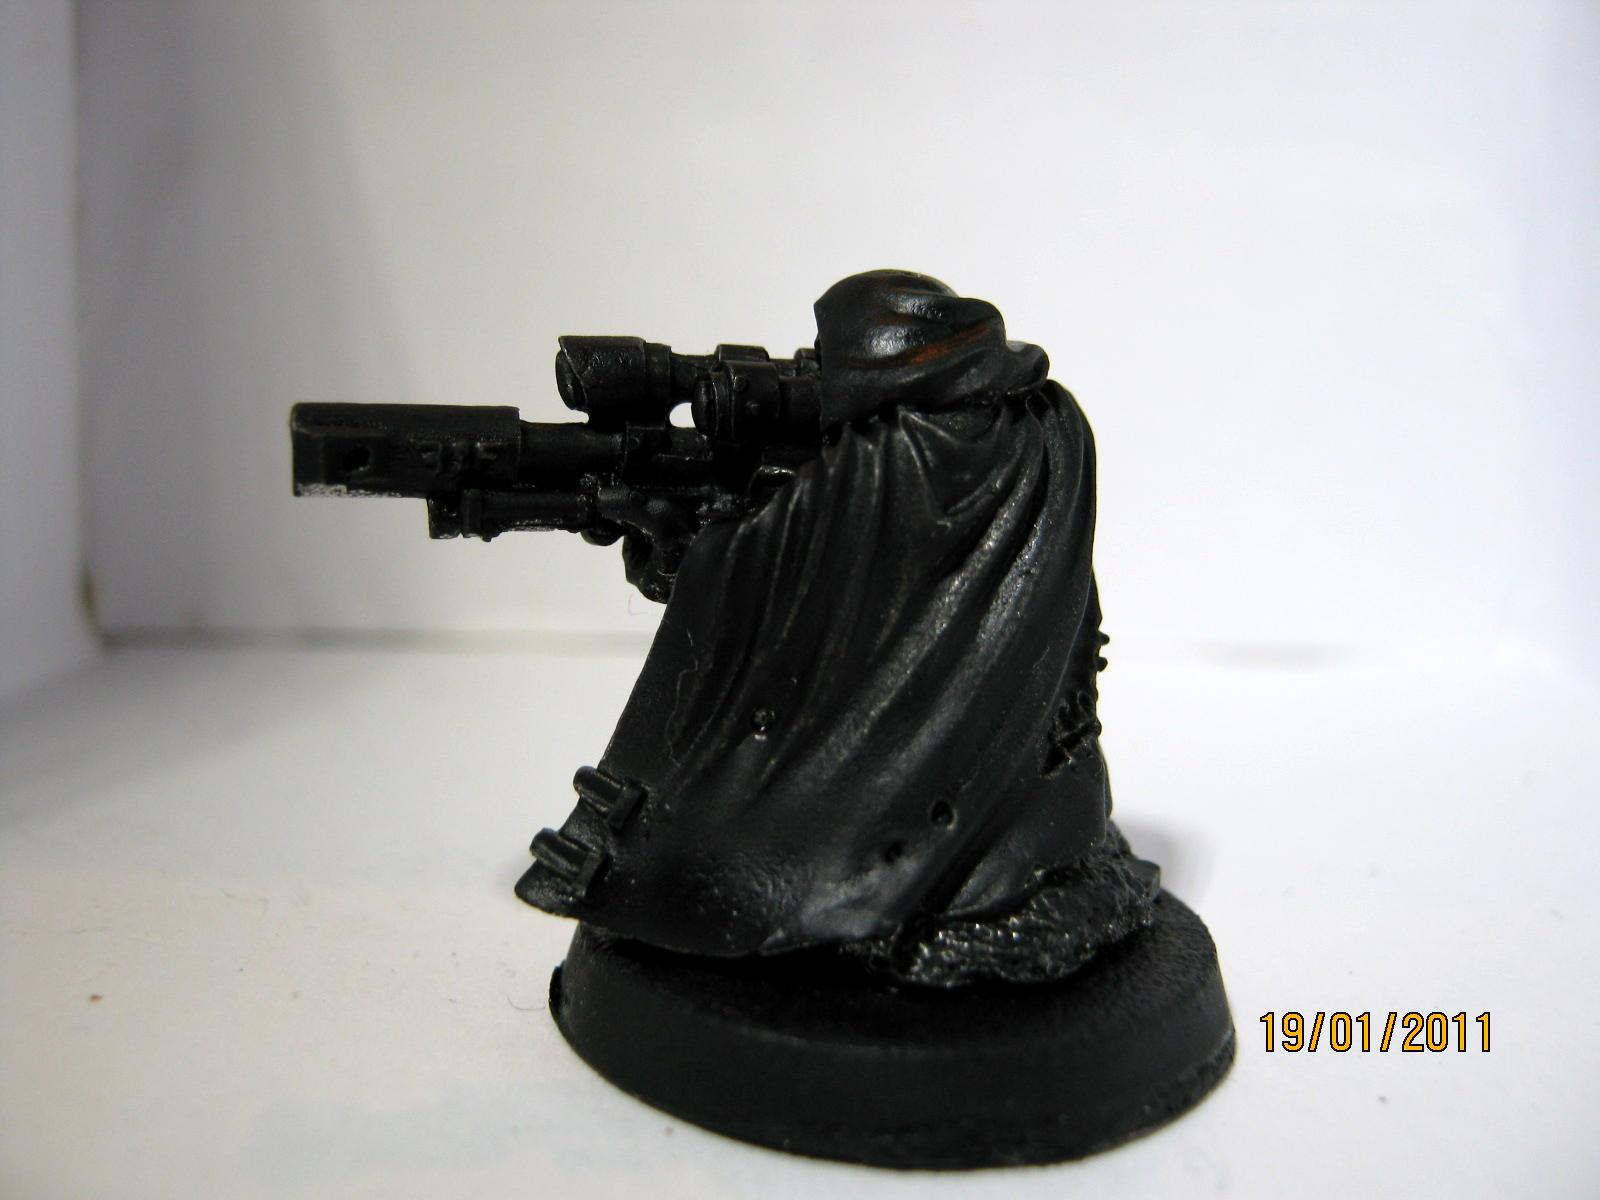 Imperial Guard, Ratling, Warhammer 40,000